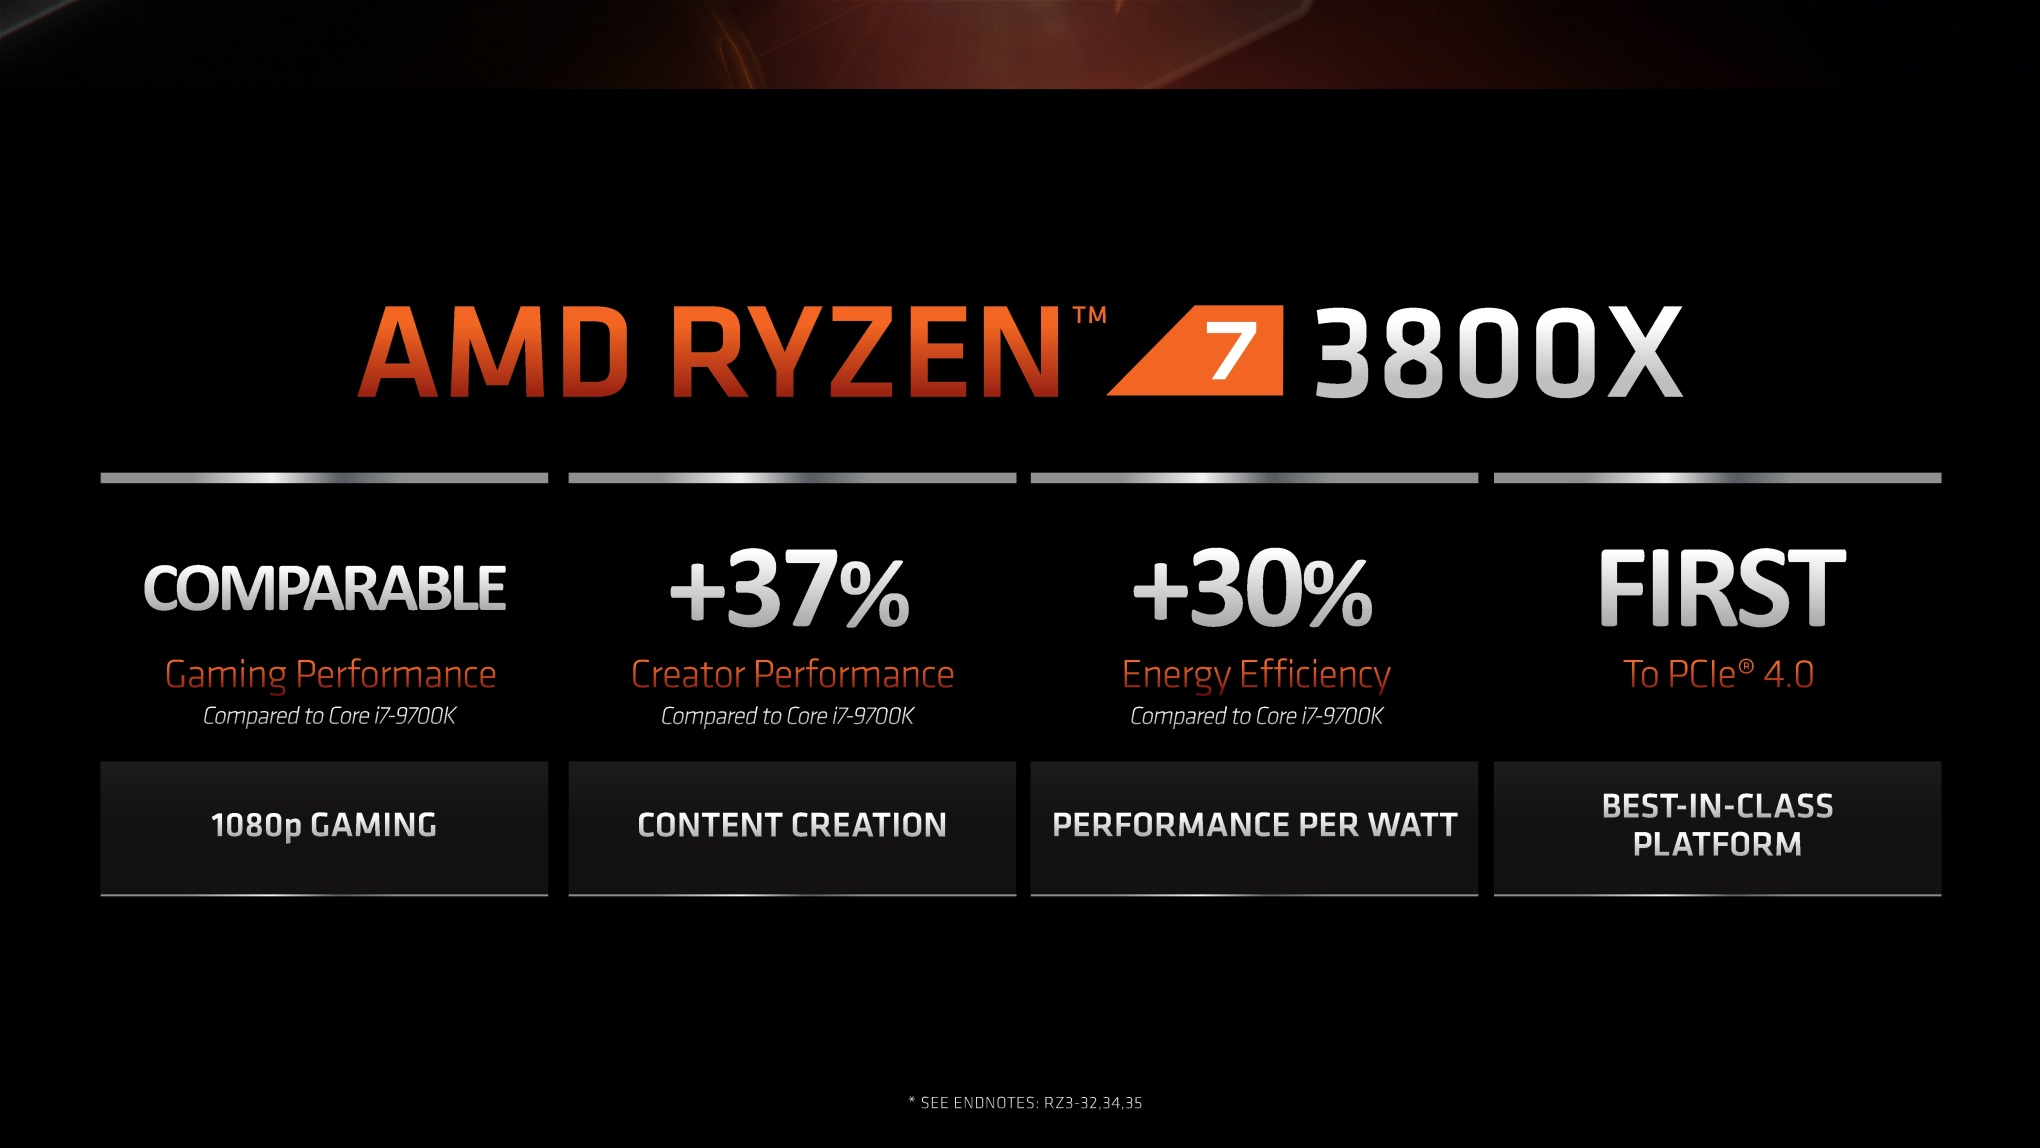 AMD blows minds with a 16-core 7nm gaming CPU that works like any